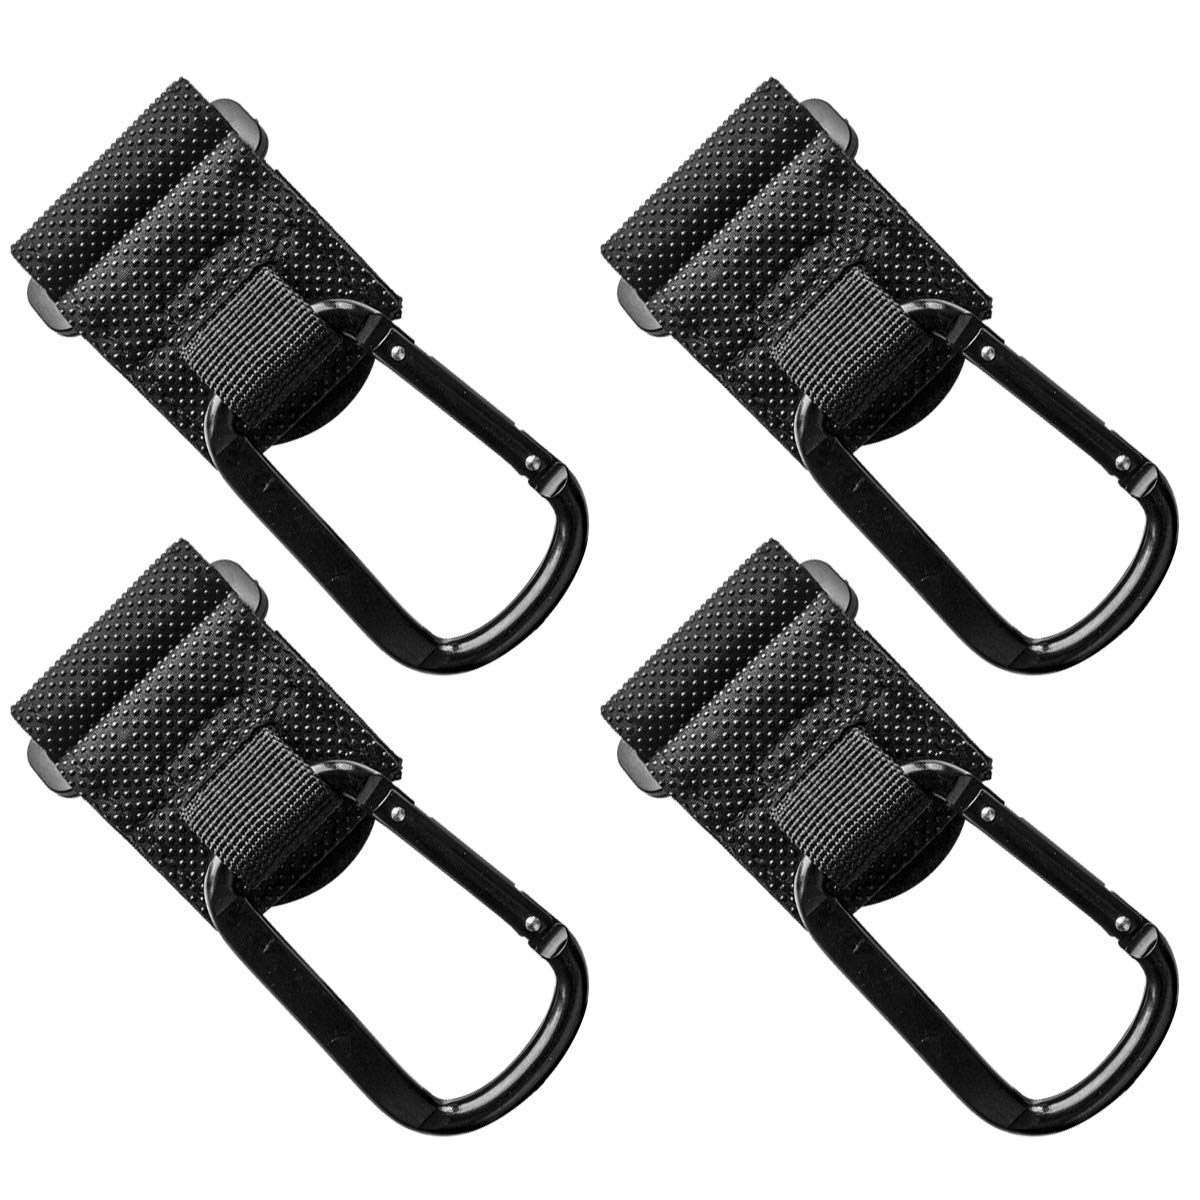 O-Best Stroller Hooks,4 Pack Baby Stroller Organizer Hook Clips to Hang Your Shopping & Bags Safely on Your Buggy Pushchair (Style A) by O-Best